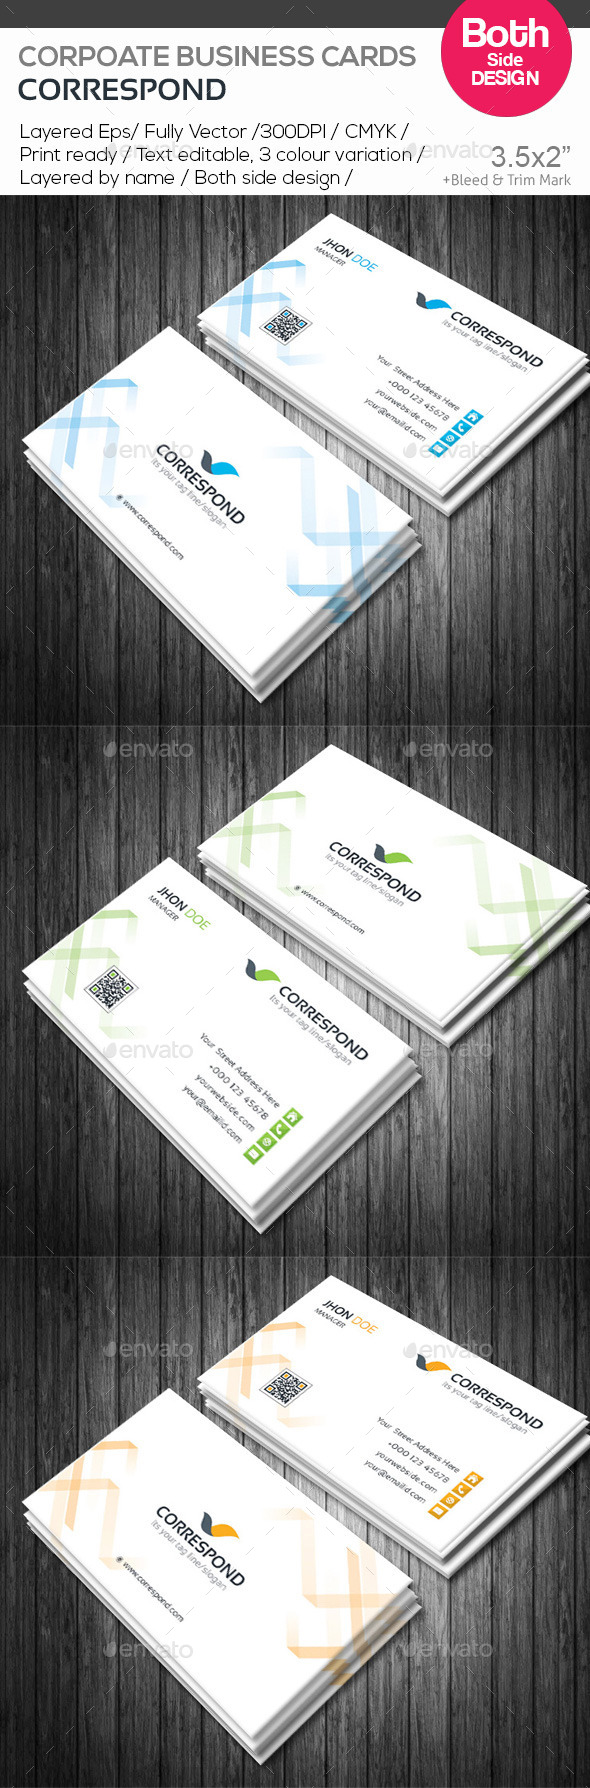 GraphicRiver Correspond Corporate Business Cards 10593484